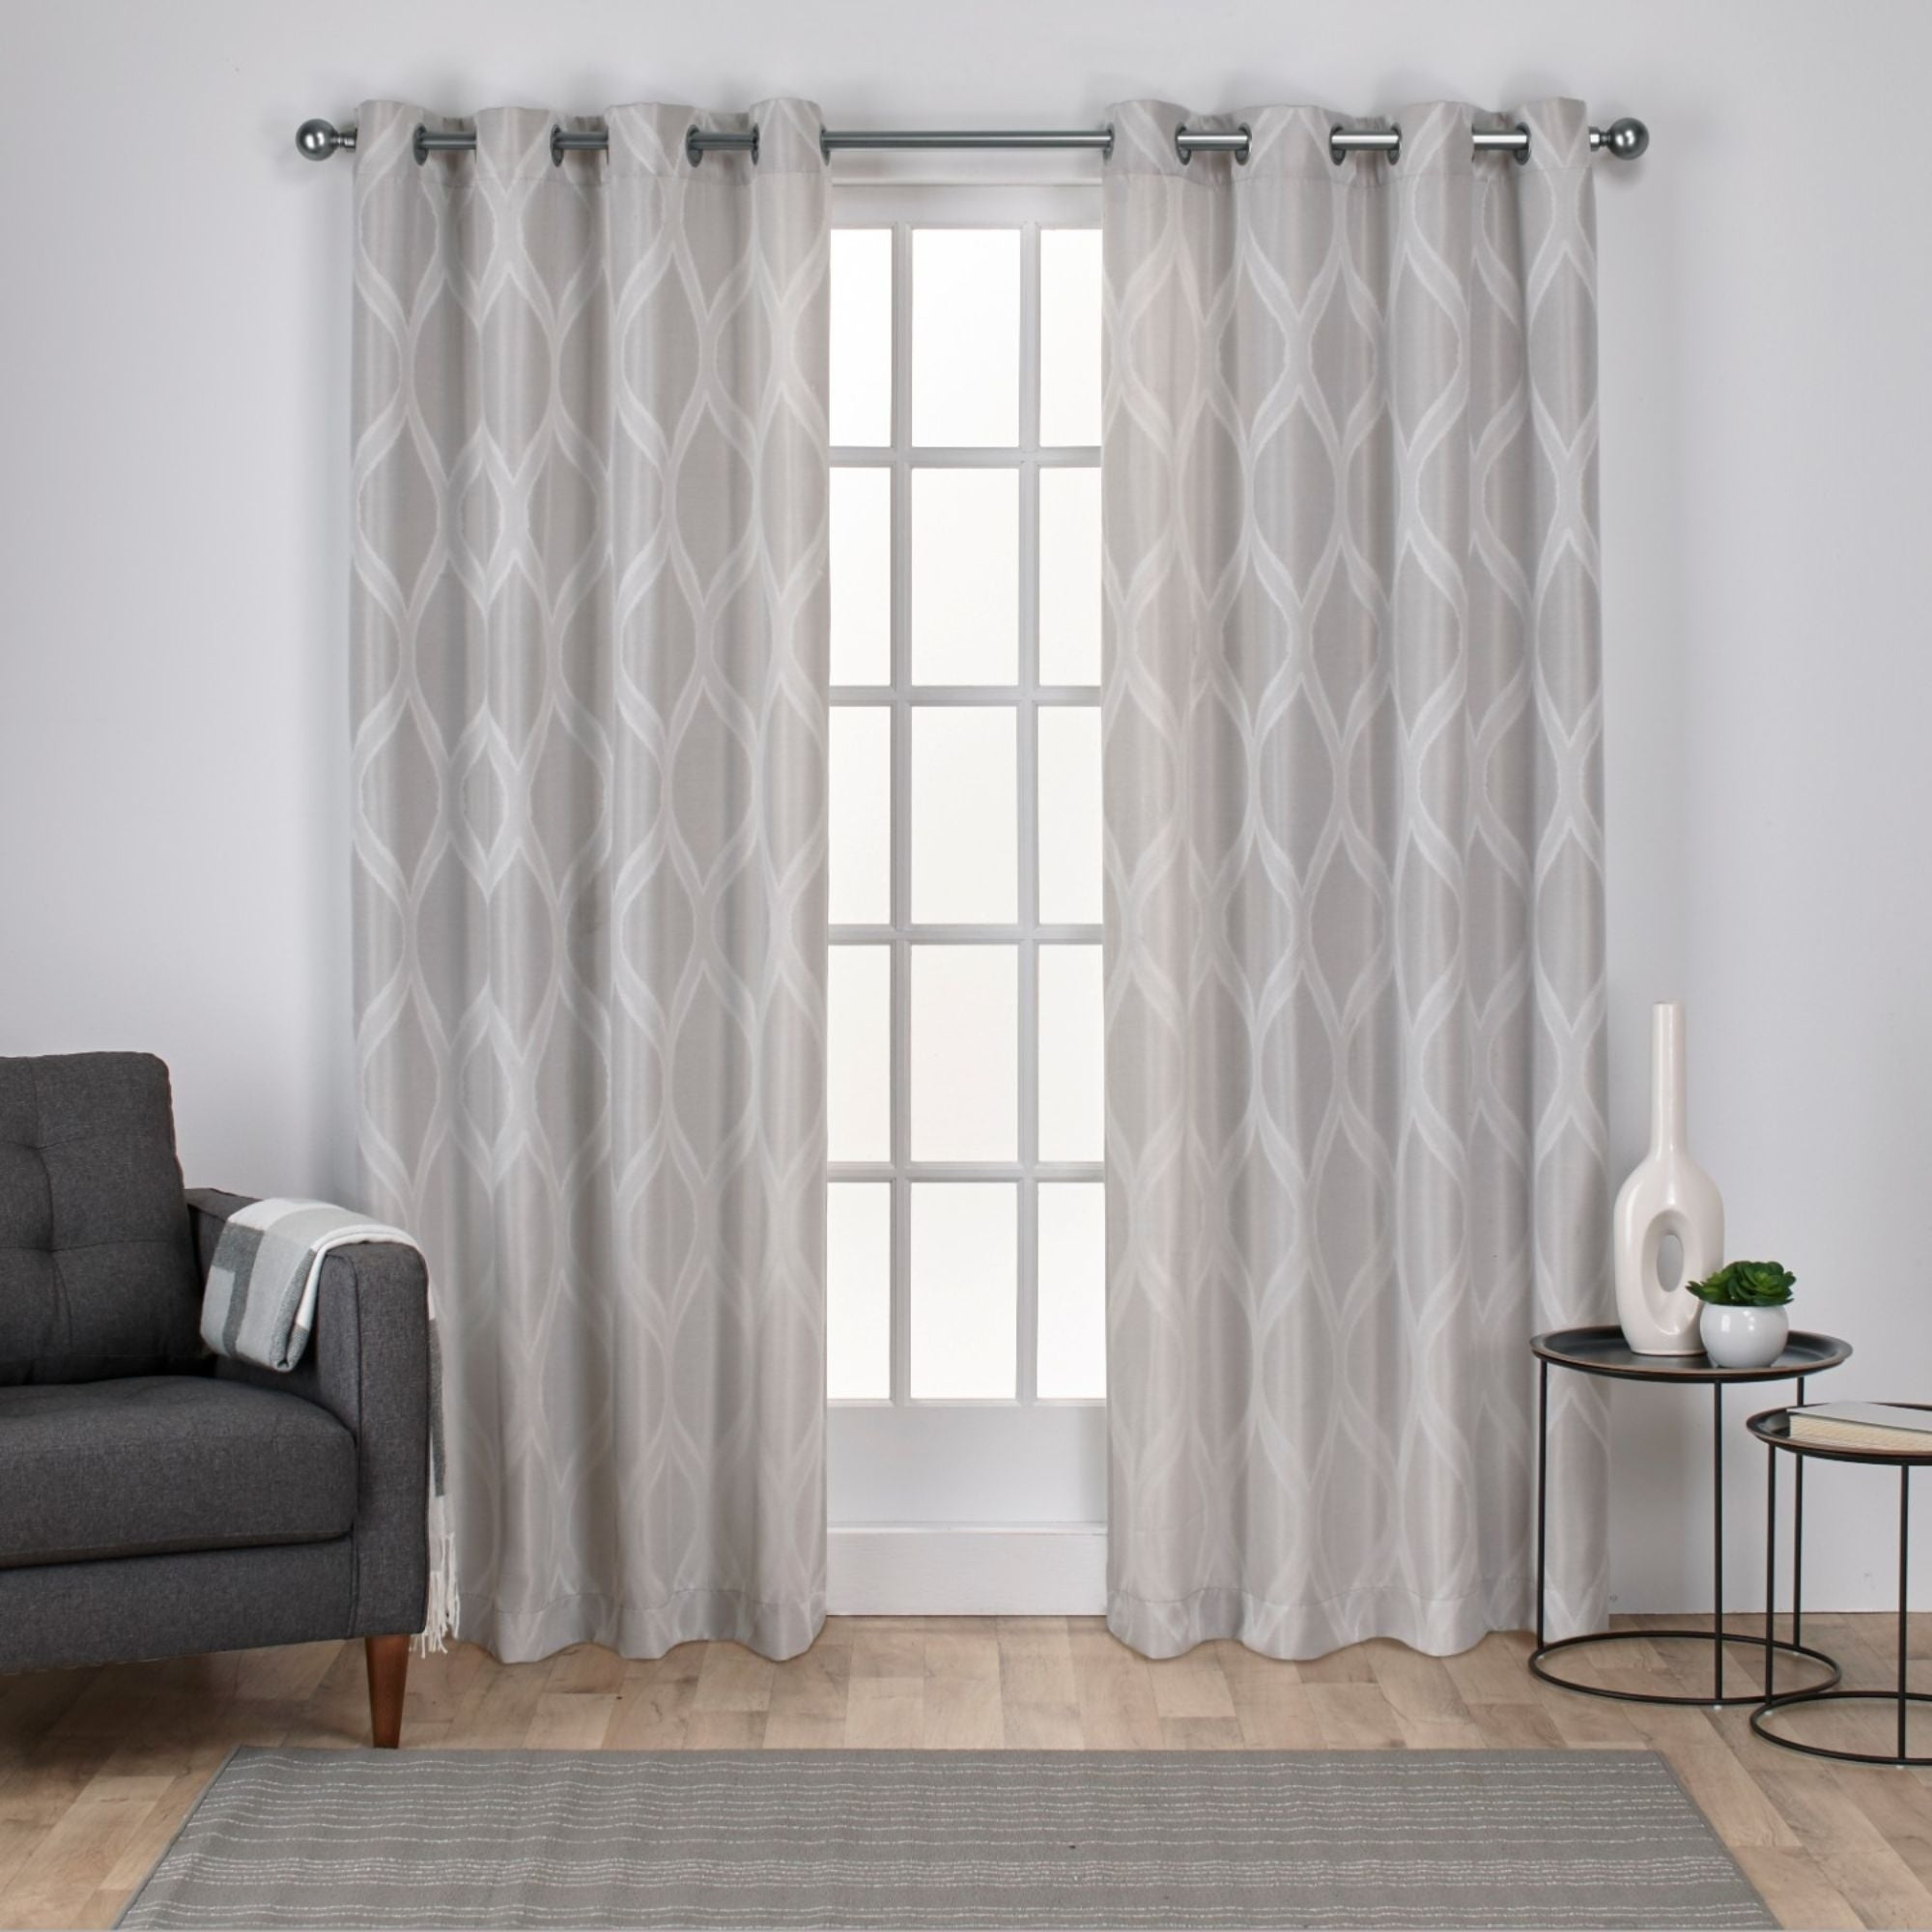 The Curated Nomad Carlton Jacquard Grommet Top Curtain Panel Pair Throughout The Curated Nomad Duane Jacquard Grommet Top Curtain Panel Pairs (View 5 of 30)